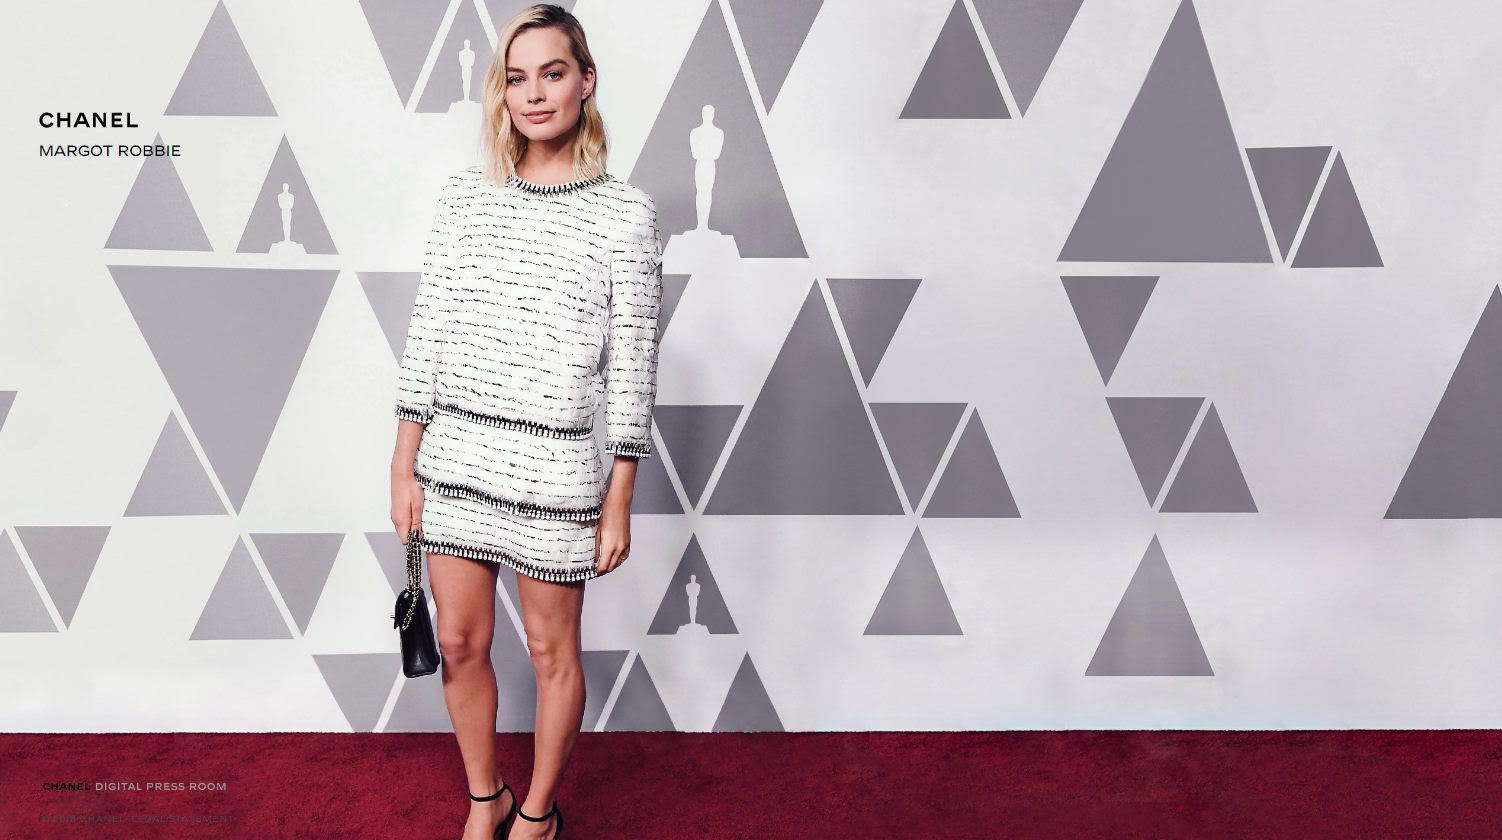 Margot Robbie rejoint la team Chanel - 1